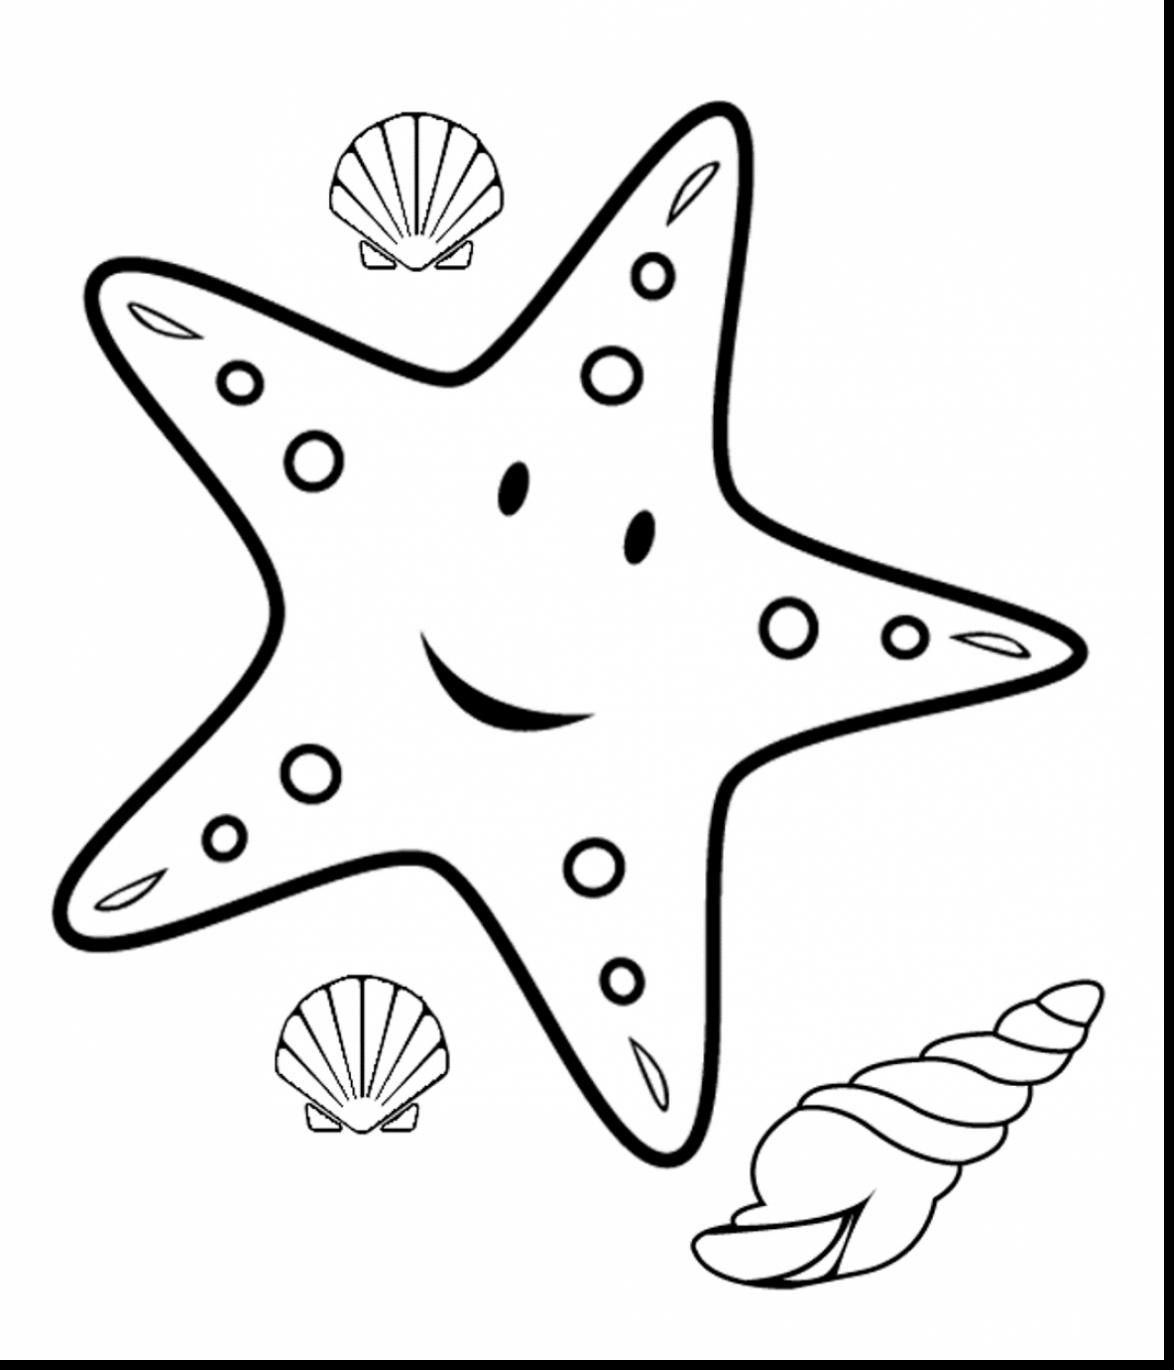 Fish outline starfish. Excellent clip art with